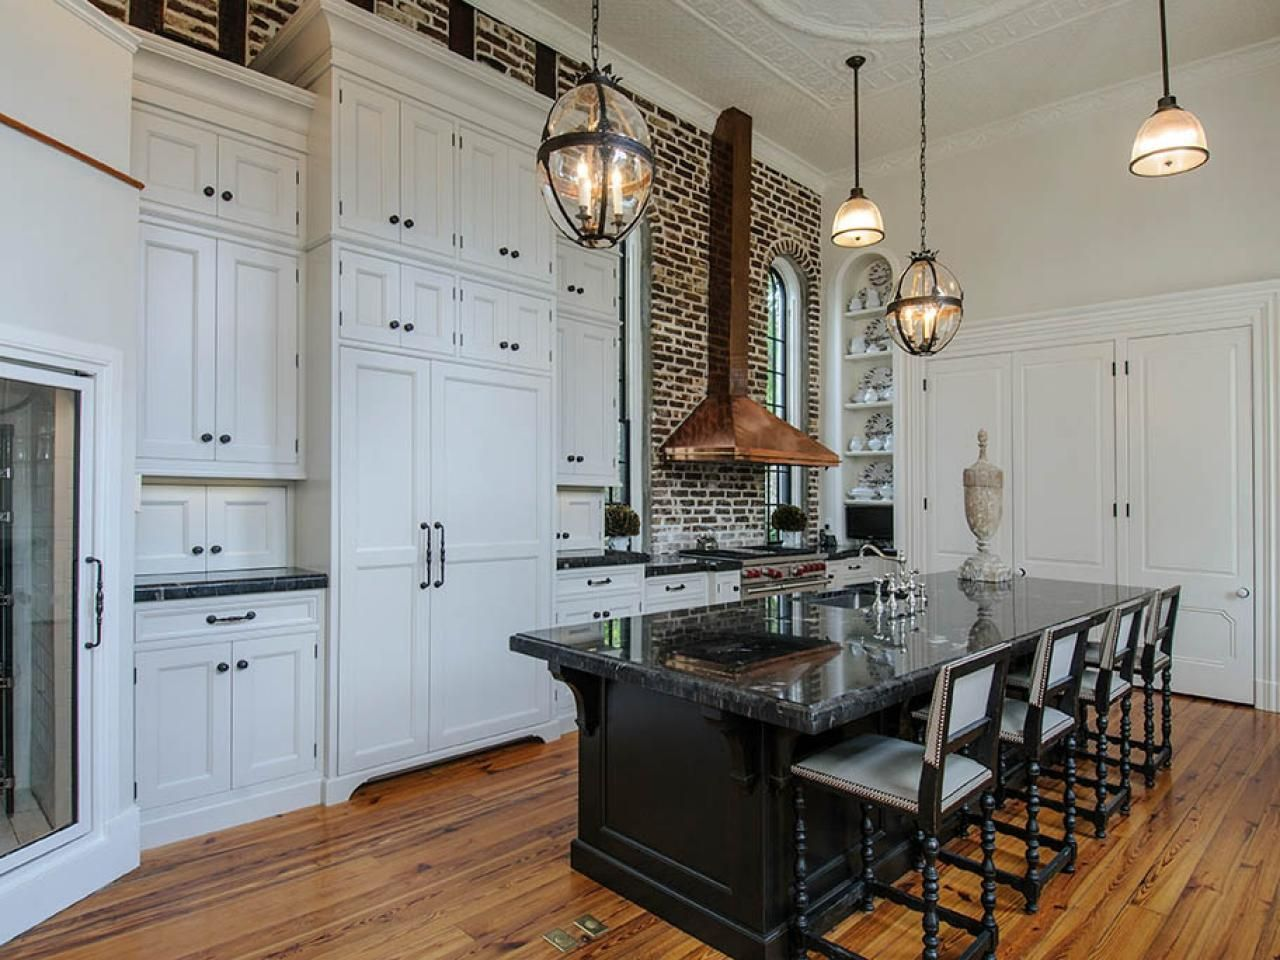 Pictures of Beautiful Kitchen Designs & Layouts From | Pinterest ...